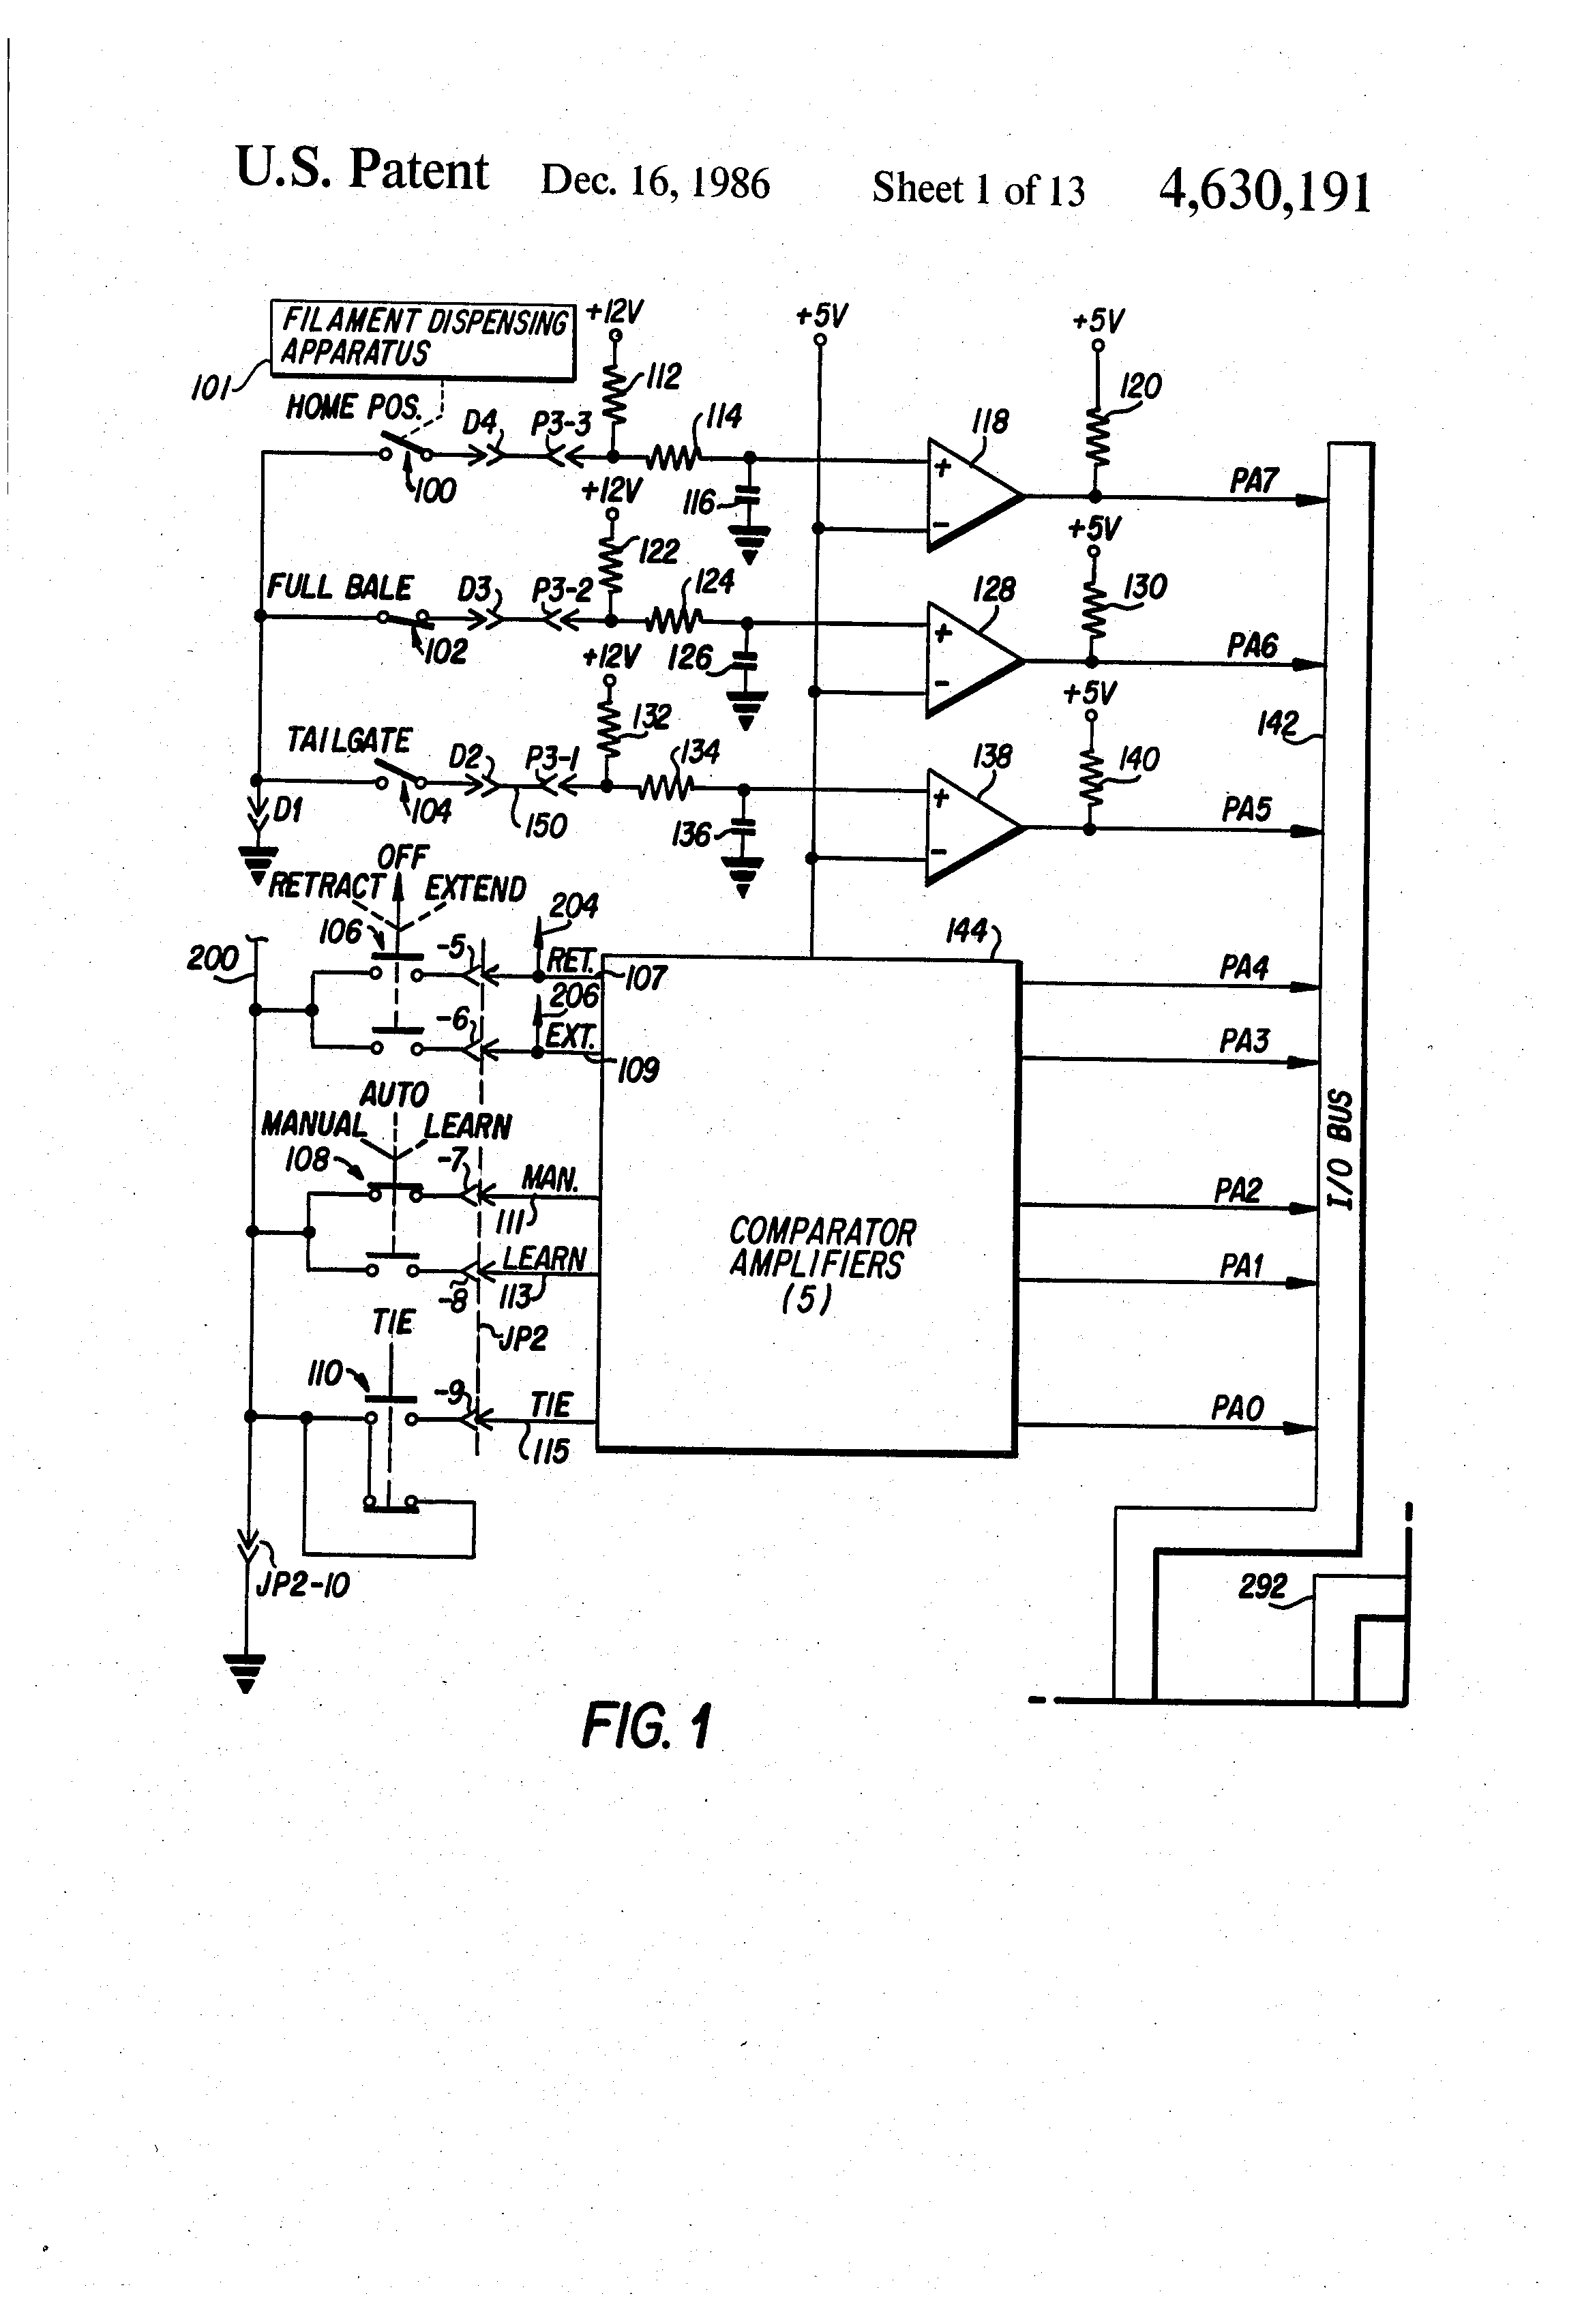 New Holland Tractor Wiring Diagram - Wiring Diagrams Long on new holland serial number location, new holland transmission, new holland drawings, new holland brakes, new holland specs, new home wiring diagram, new holland skid steer, new holland tools, new holland serial number reference, new holland lights, 3930 ford tractor parts diagrams, new holland ts110 problems, new holland controls, new holland boomer compact tractors, new holland ls190 skid loader, new holland starter, new holland service, new holland parts, new holland repair manual, new holland cylinder head,